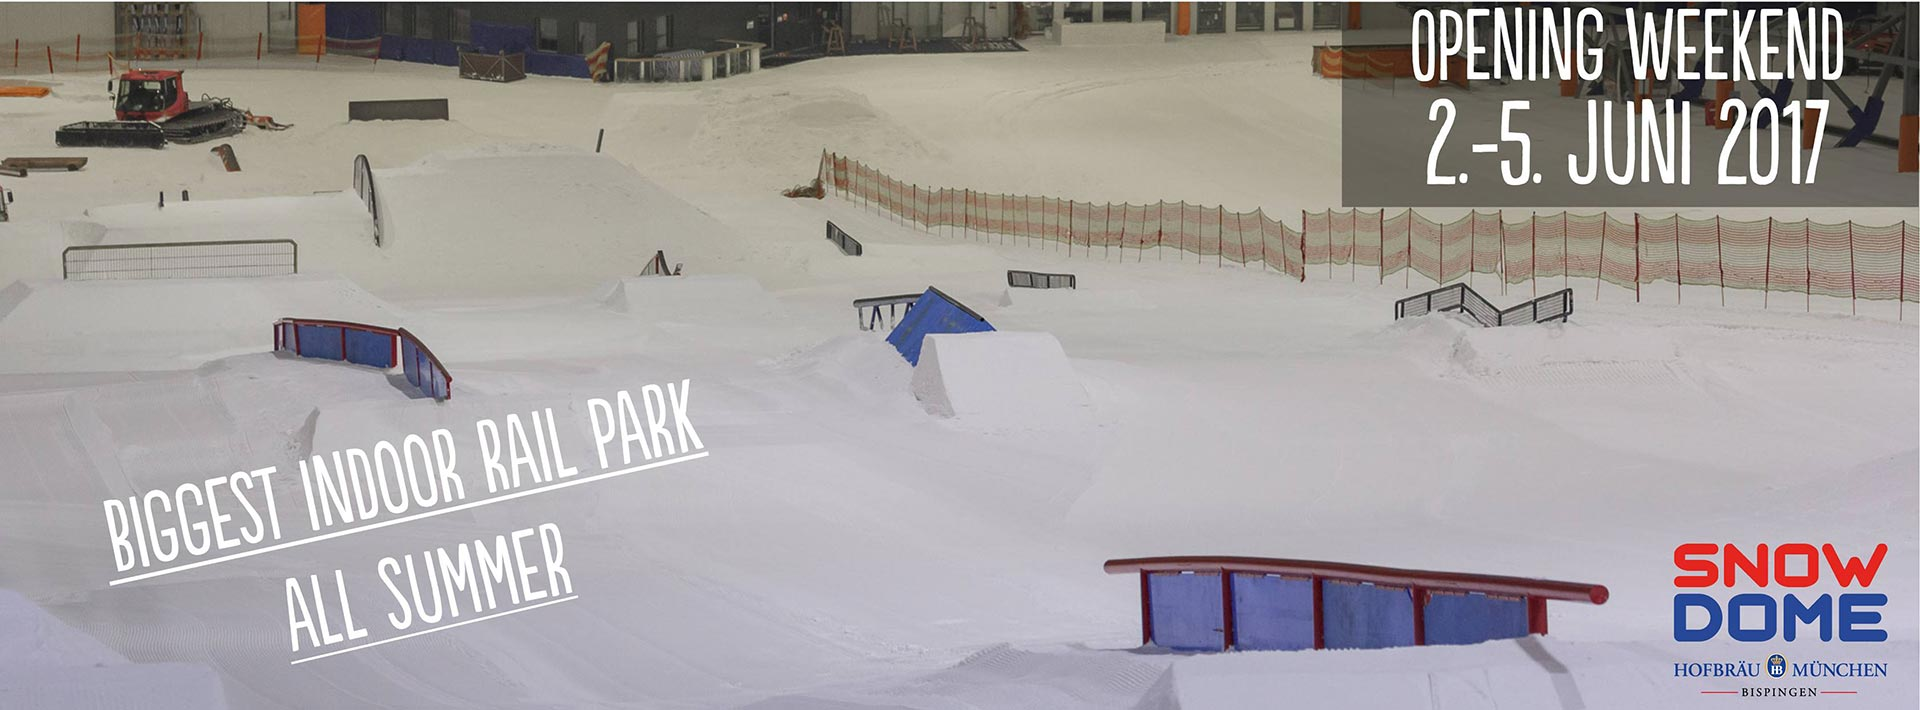 Summer Opening Snowpark Bispingen - Save the Dates